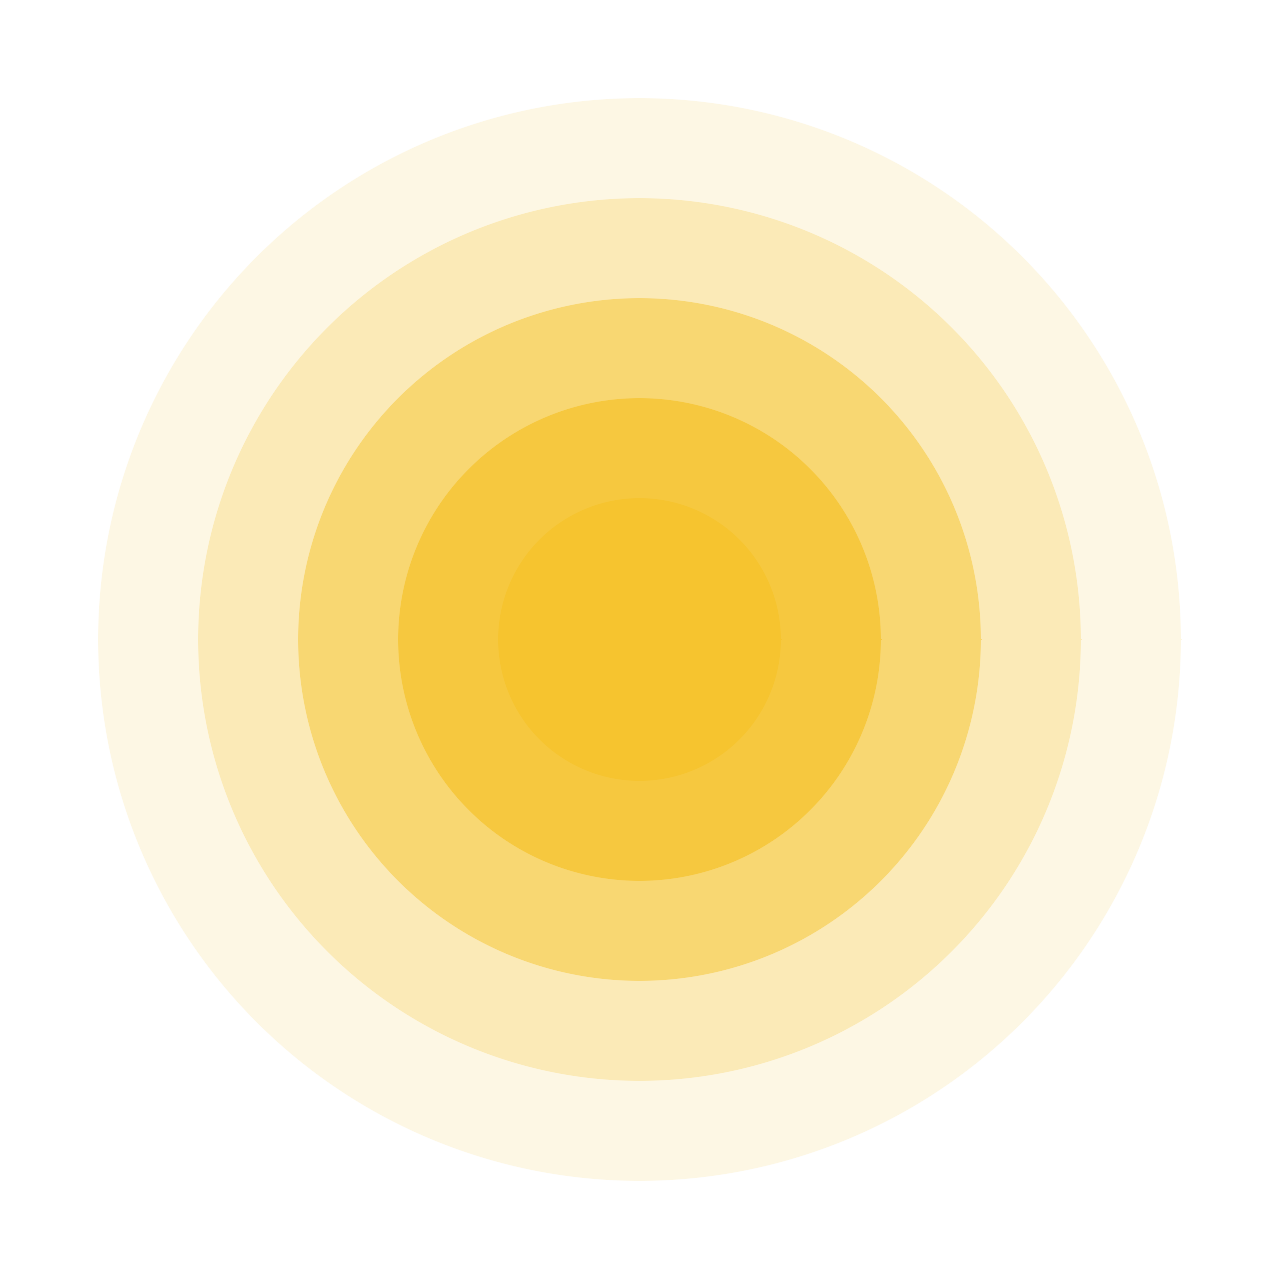 The Future Reference_GRADIENTS_CIRCLE_099.png